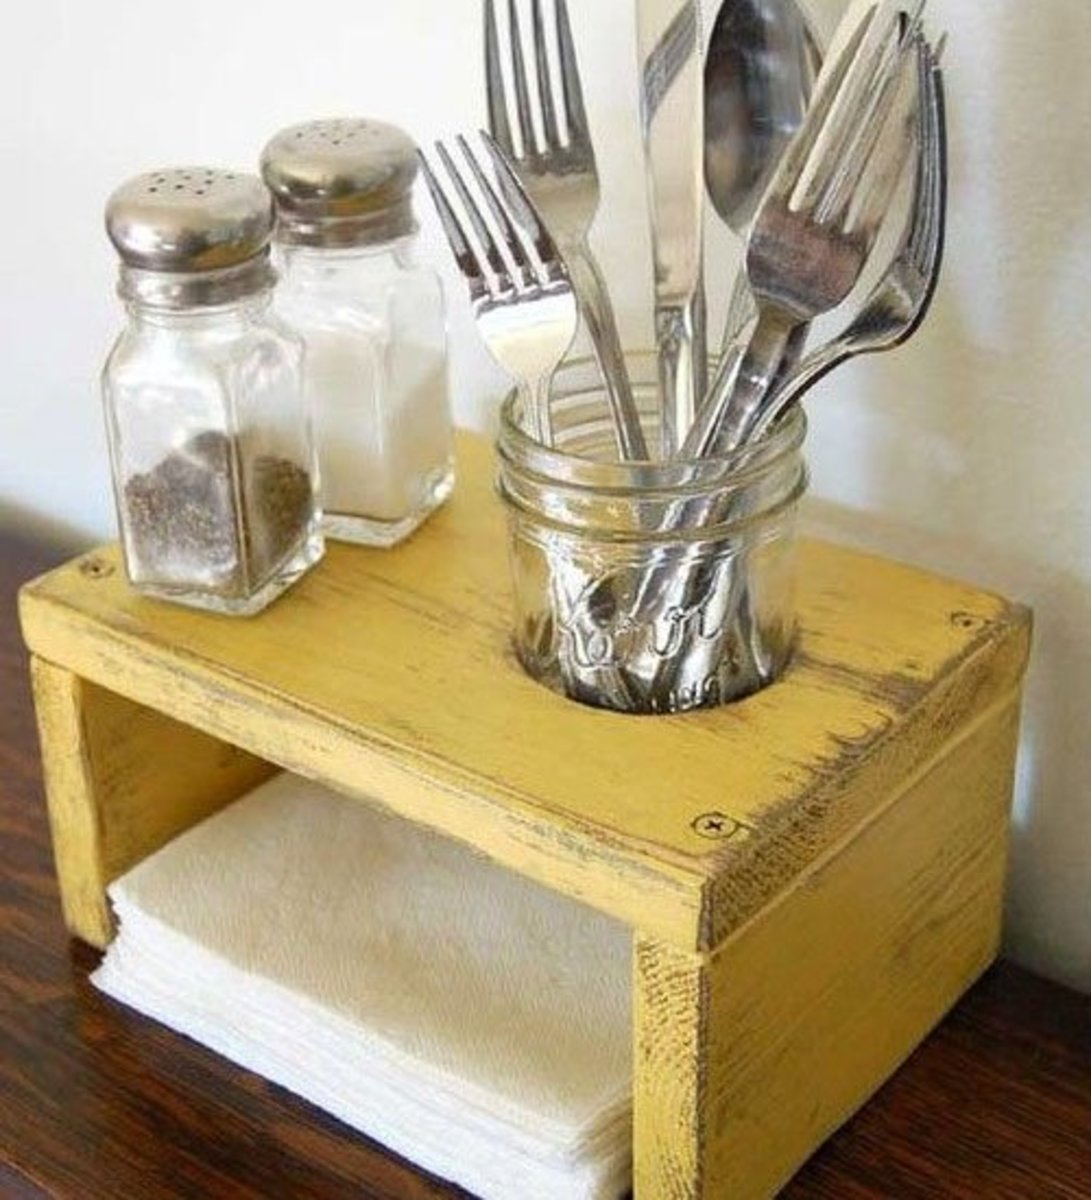 Small Kitchen Organizing Ideas   Click Pic for 20 DIY Kitchen Organization Ideas  Recycled Kitchen Organizer